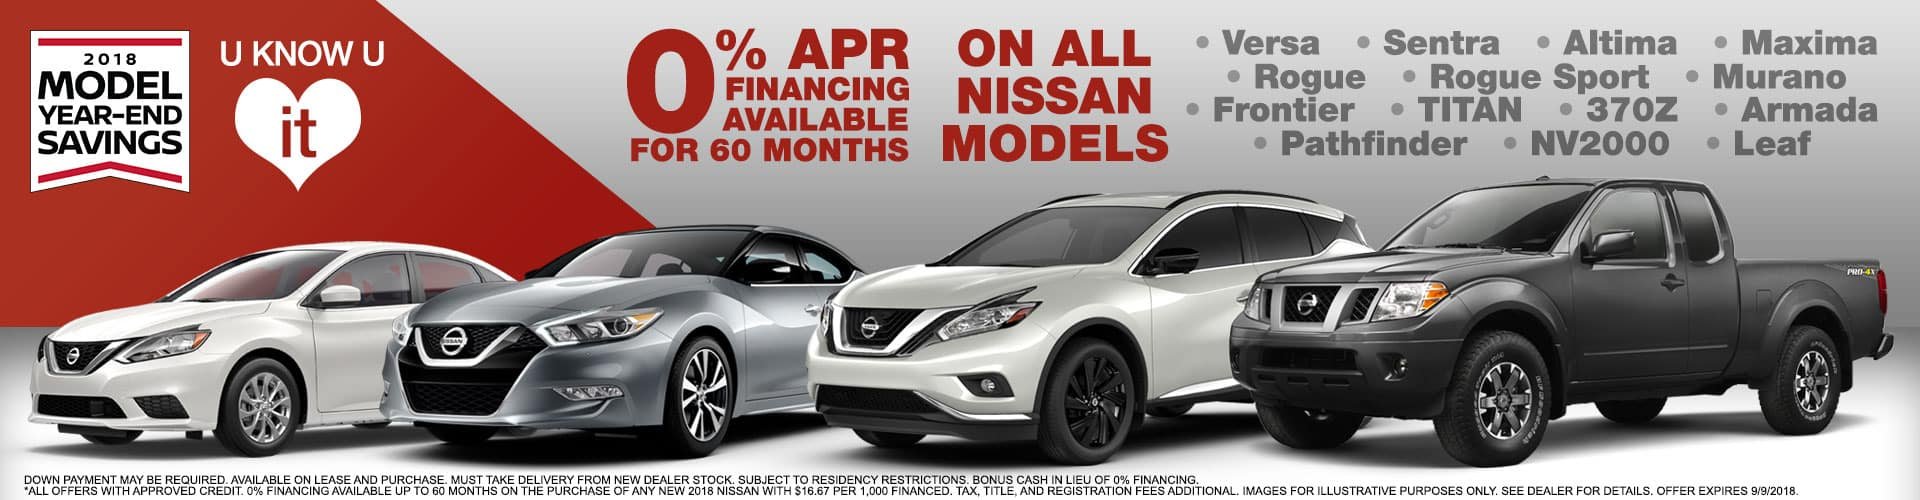 Nissan motor corp finance phone number for Nissan motor finance corporation